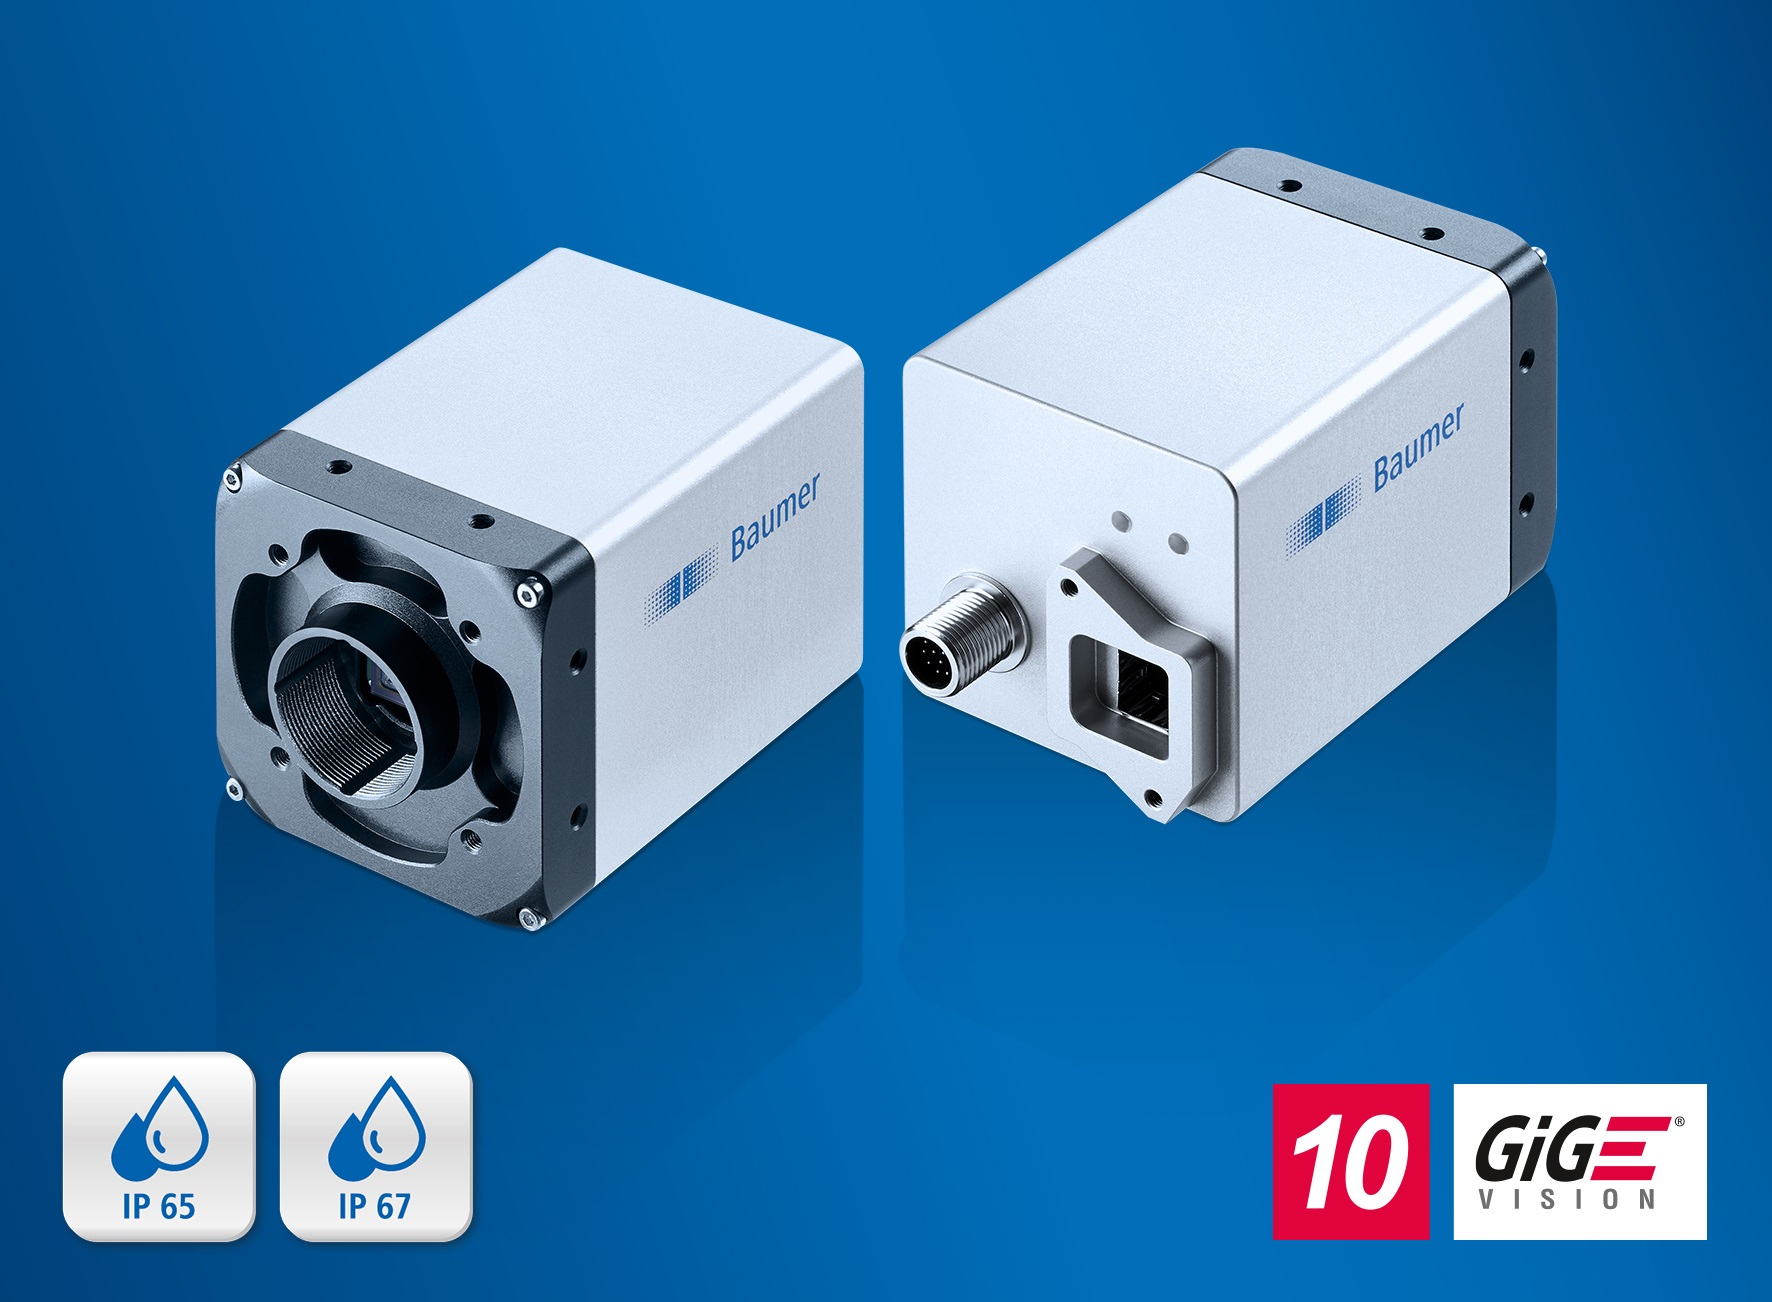 The new LX cameras with a 10 GigE Vision compliant fiber optics interface